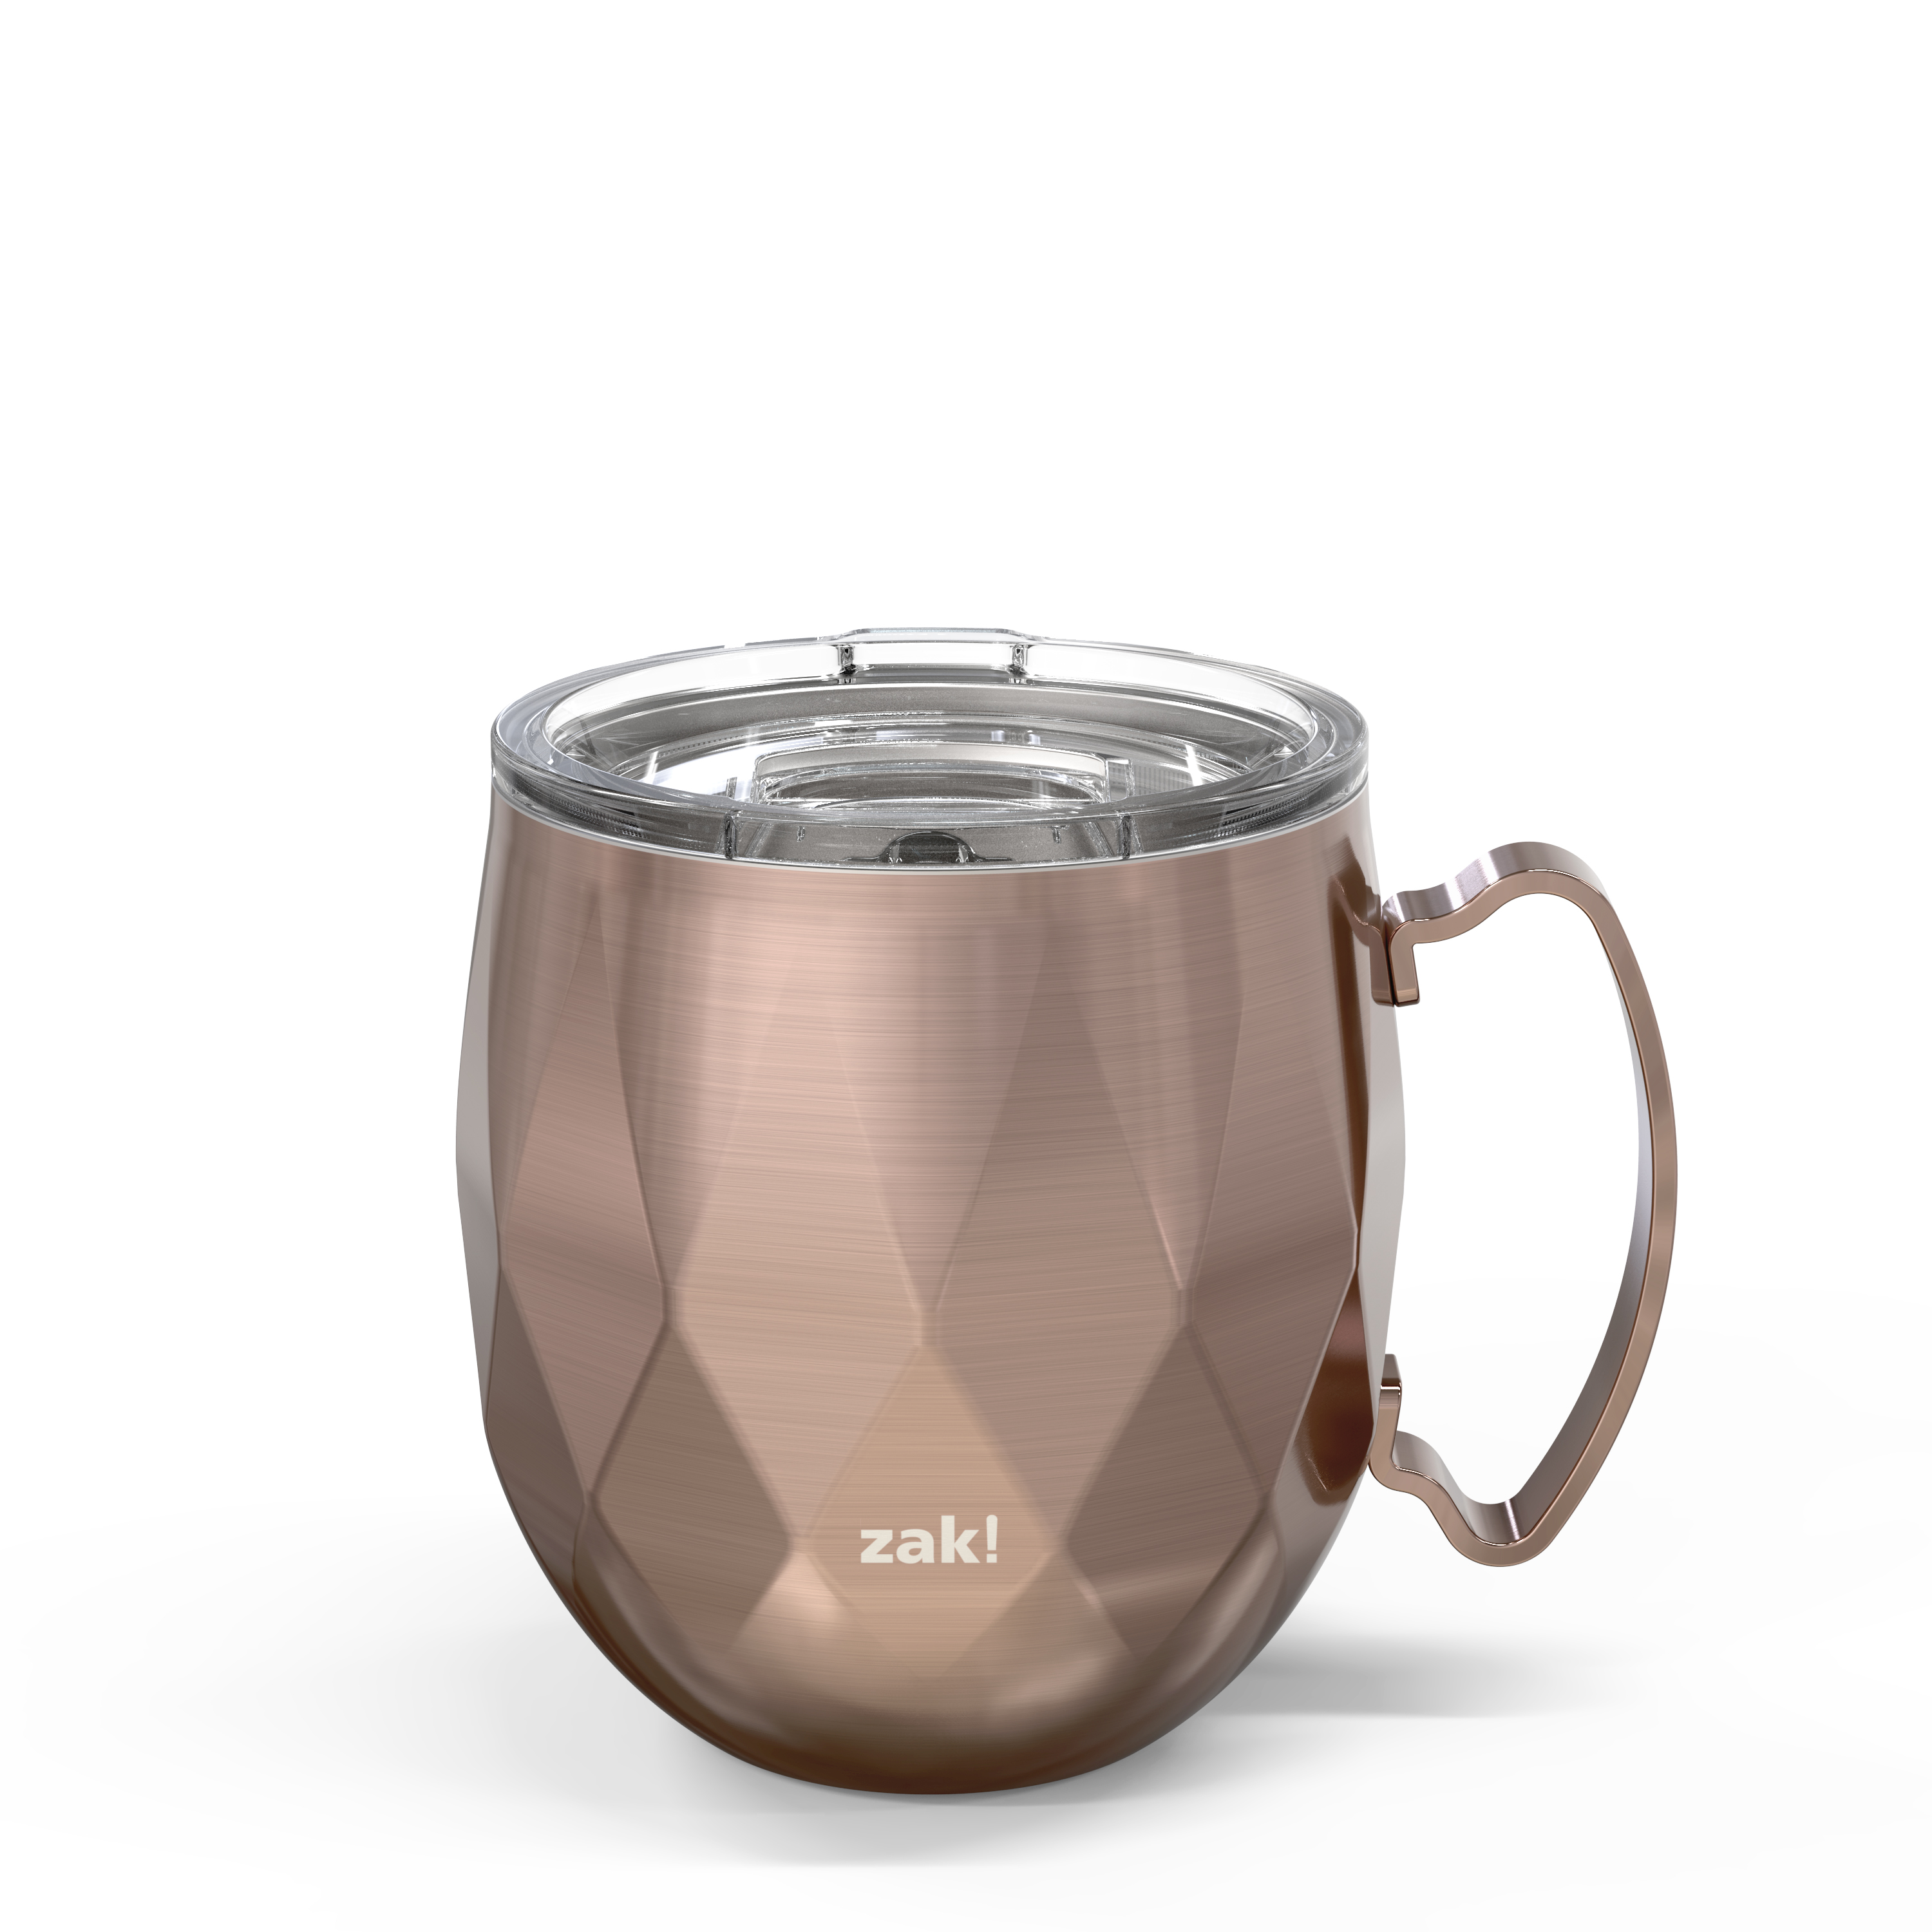 Fractal 19 ounce Vacuum Insulated Stainless Steel Mule Mug, Rose Gold slideshow image 1